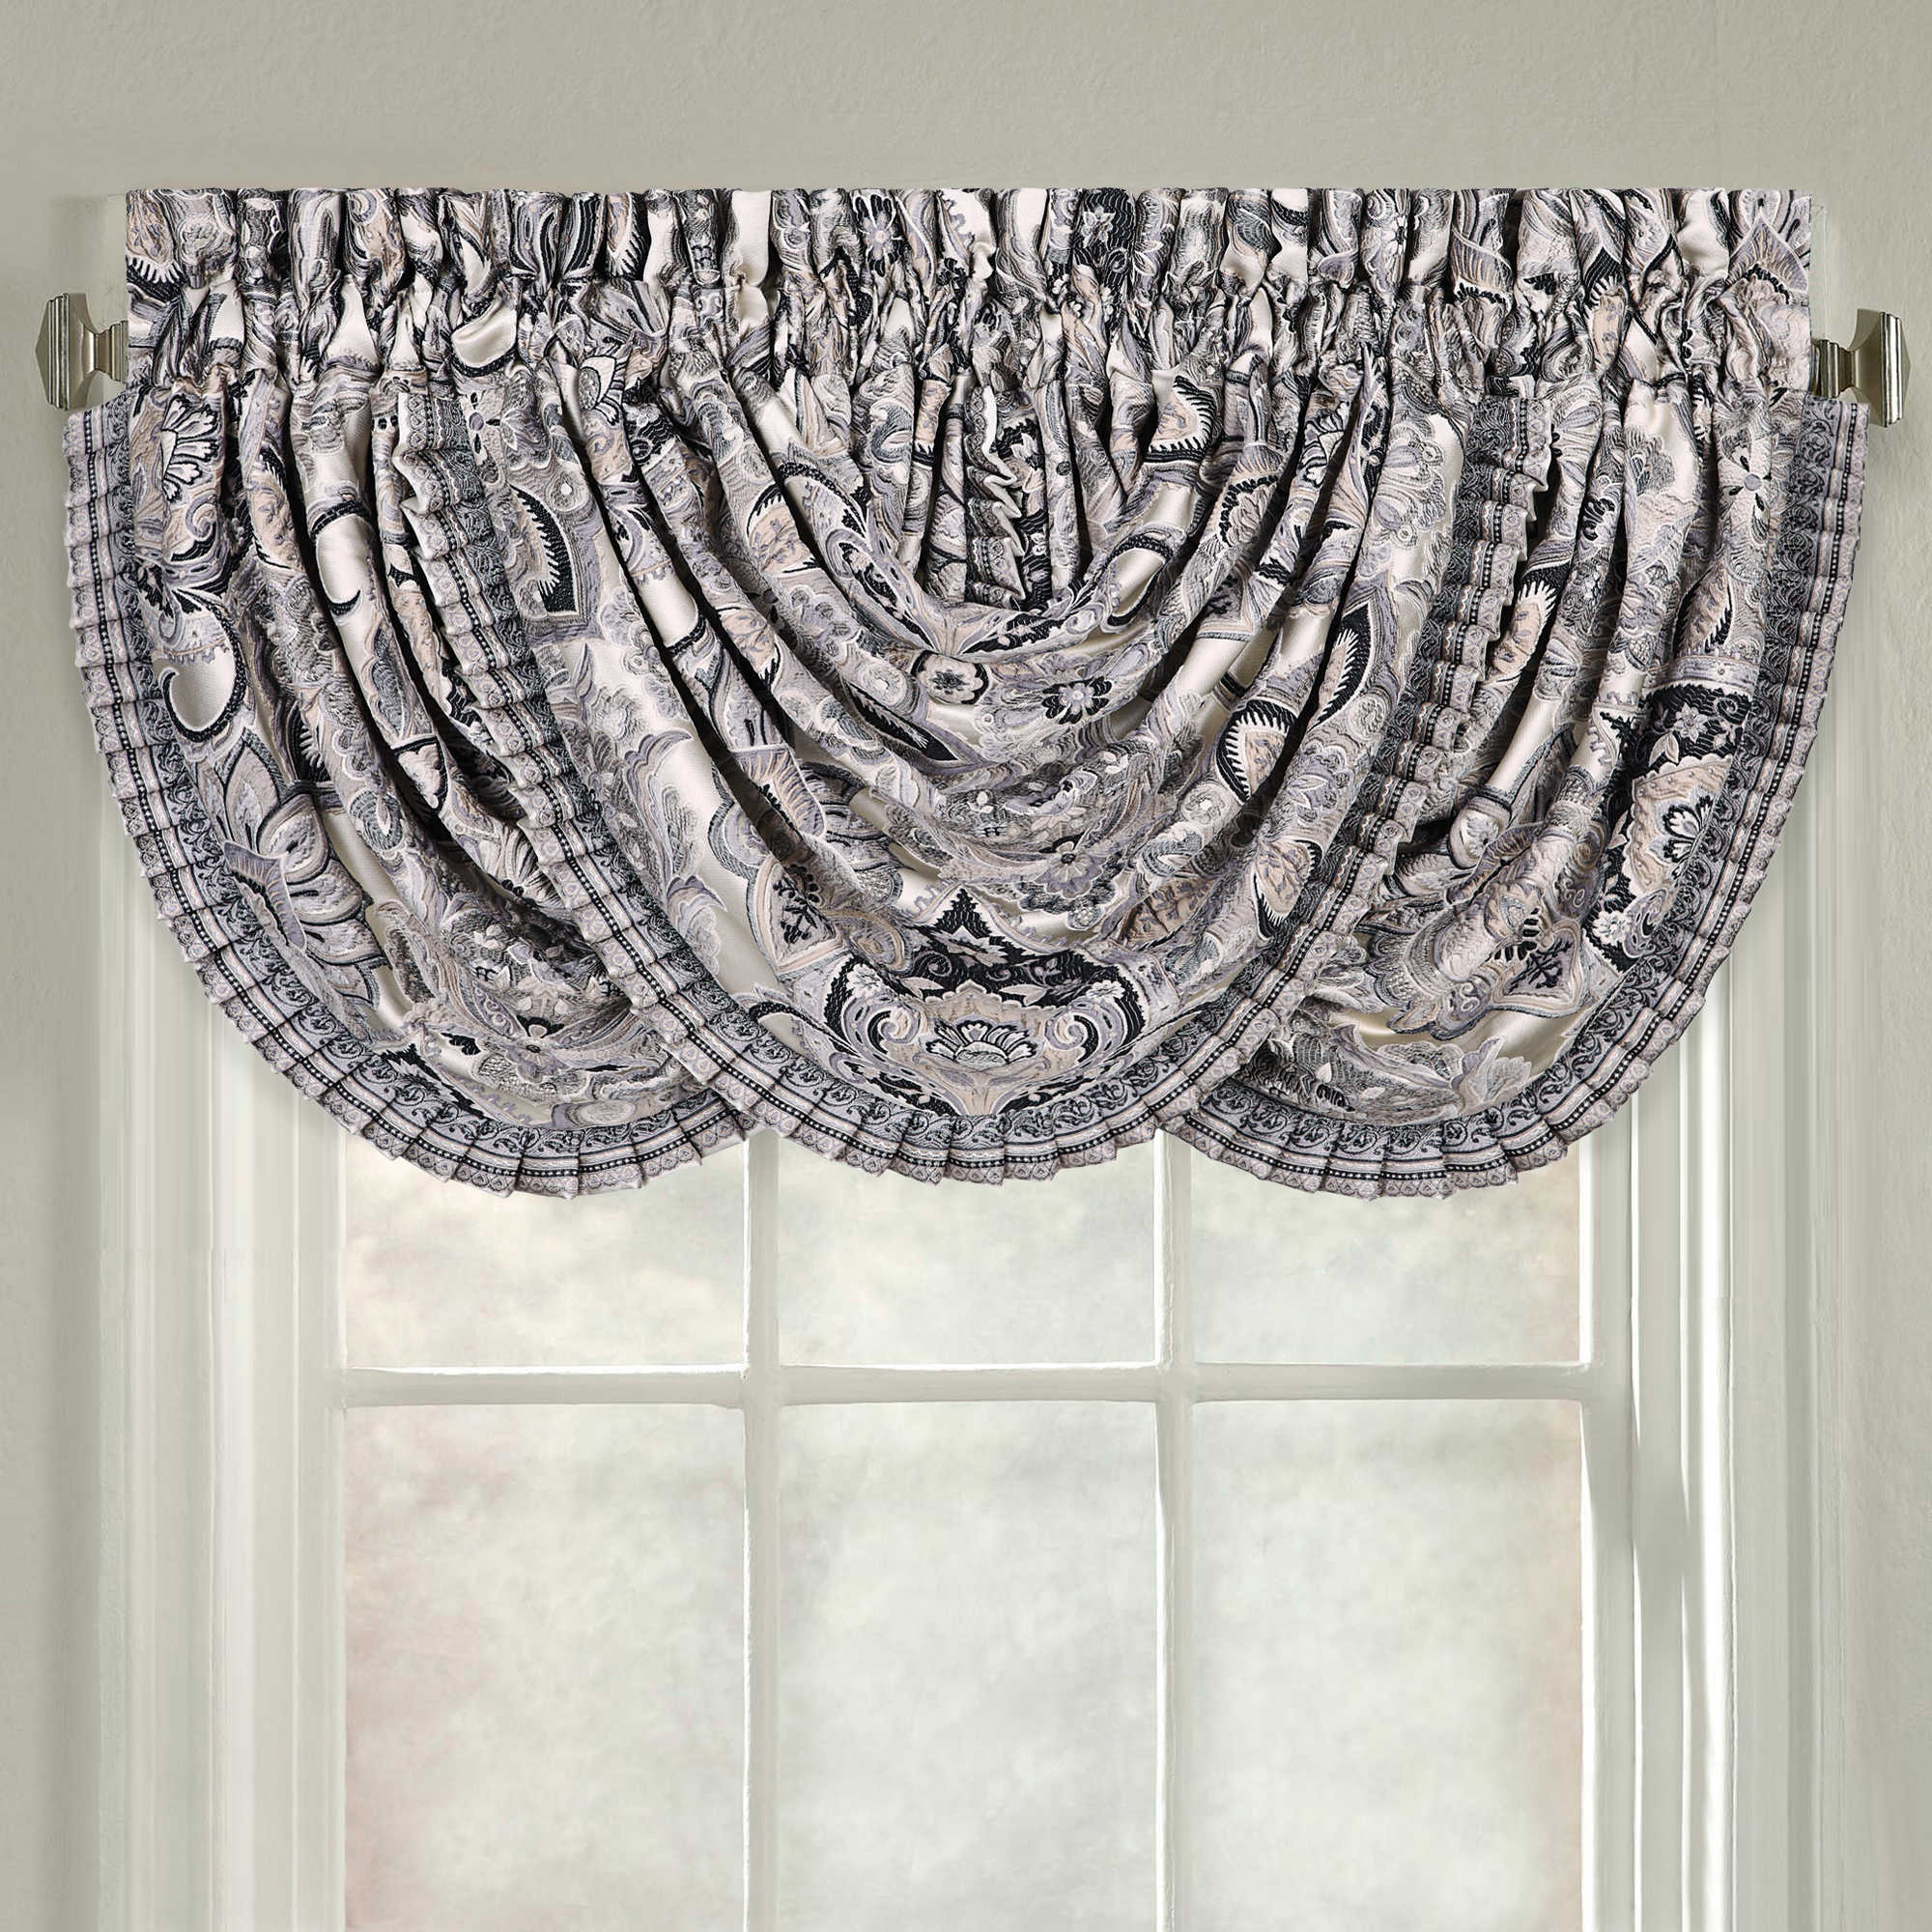 valances royale damask inspect treatment window valance waterfall classique home